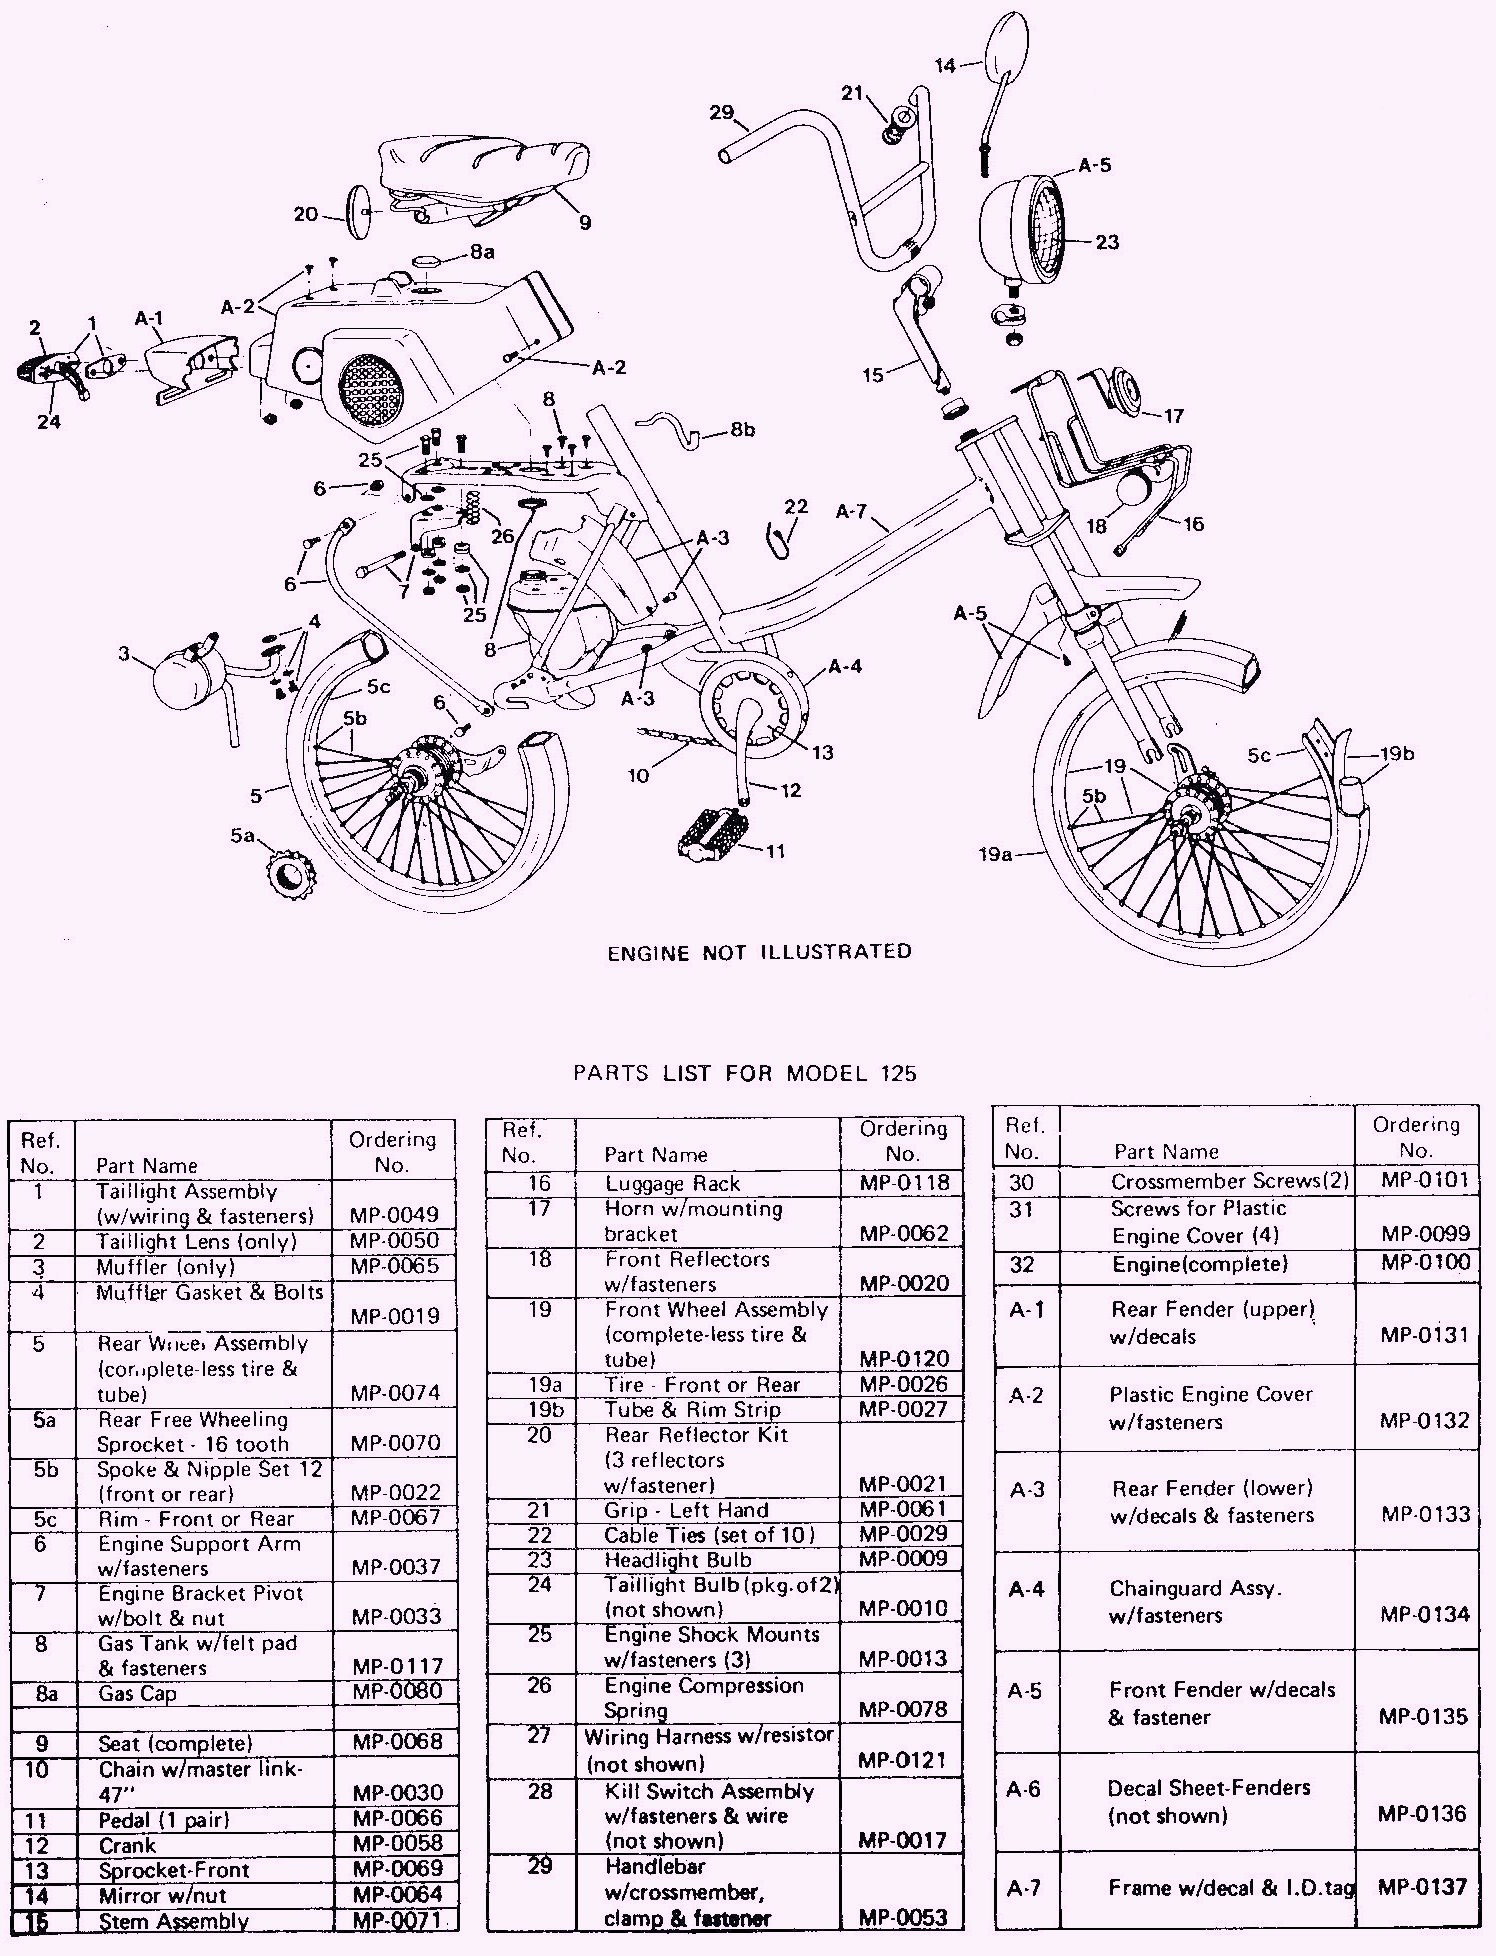 razor e300 wiring diagram with Amf Parts on Electric E Scooter Wiring Diagram likewise Razor Dirt Quad Fourwheel Dirt Quad Parts C 194165 194169 194184 also Wiring Diagram For A Pride Go Go Ultra likewise Electric Scooter Wiring Diagrams likewise E300 Wiring Diagram.